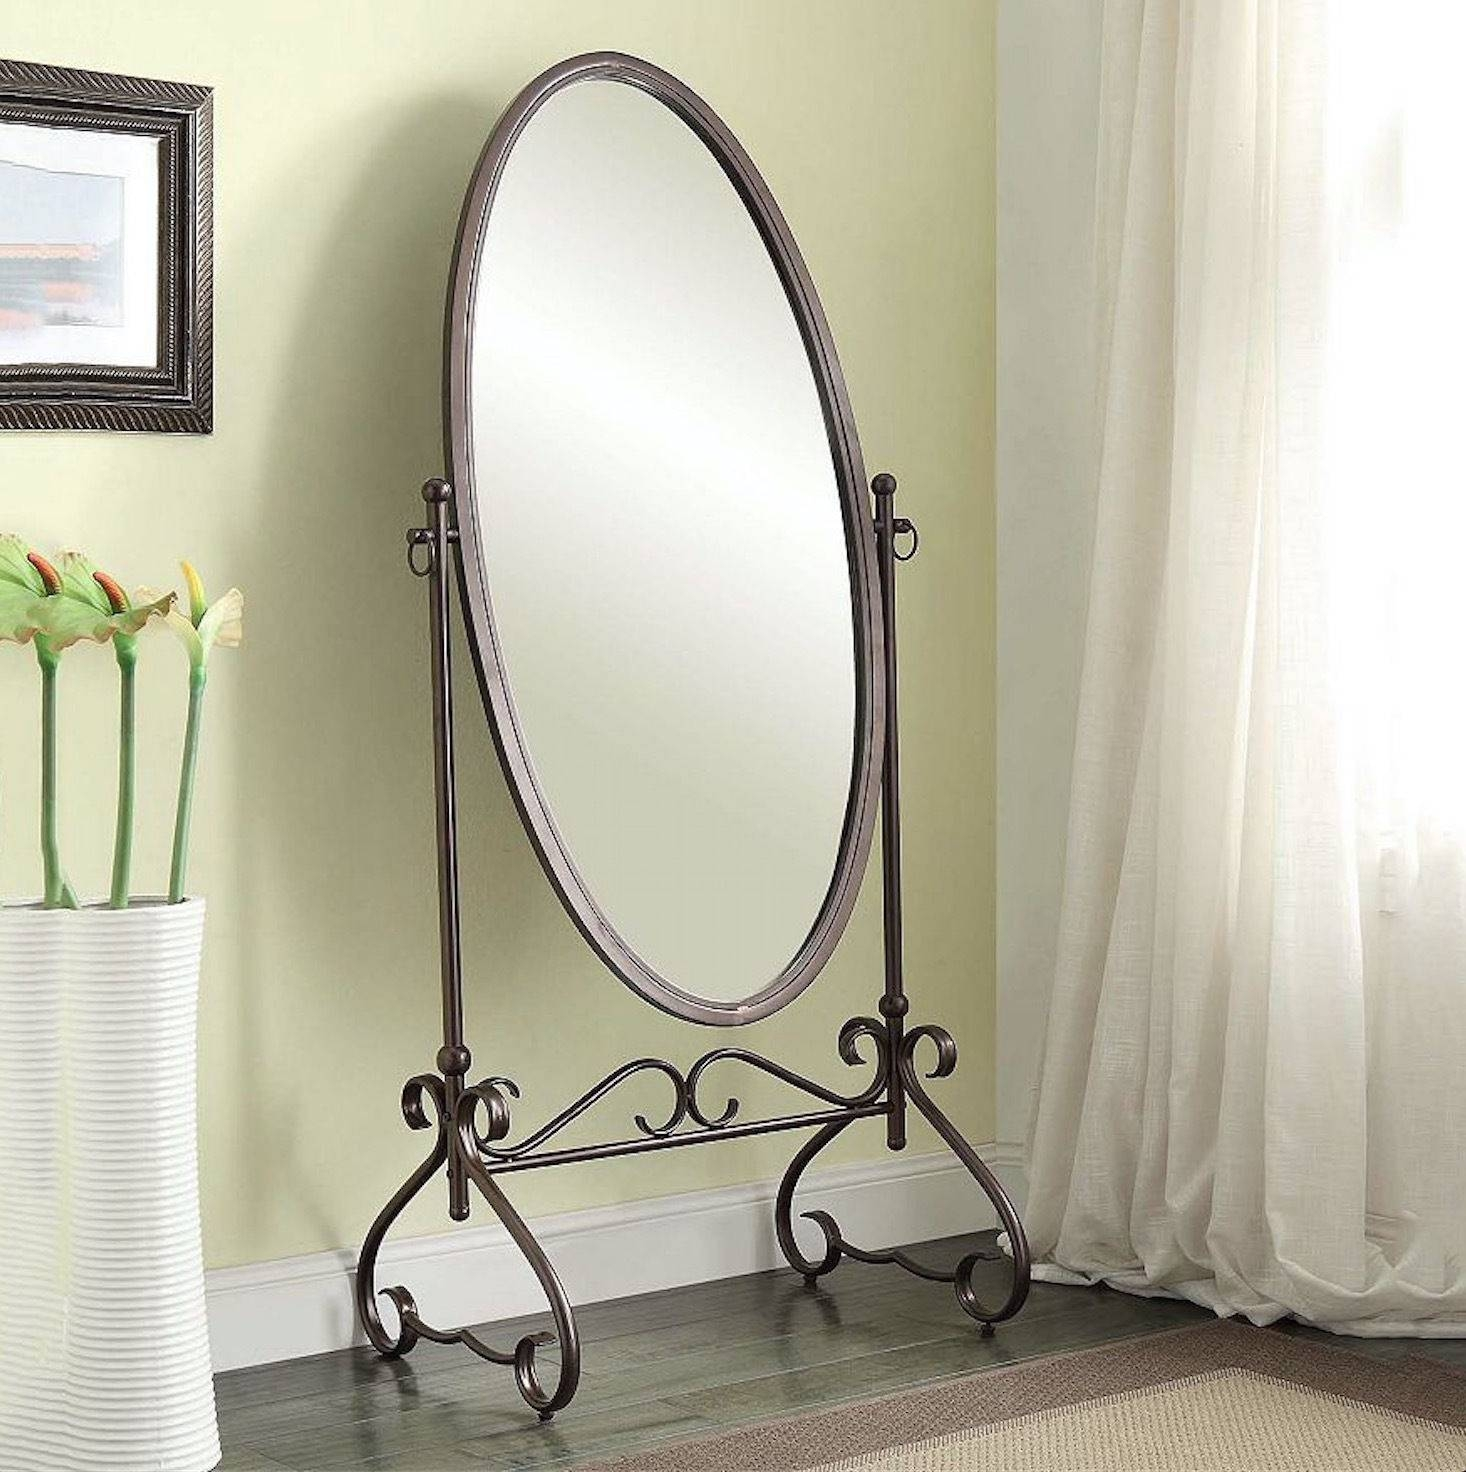 Cheval Floor Mirror Large Oval Antique Bedroom Full Length Tilt Within Oval Freestanding Mirrors (View 7 of 25)